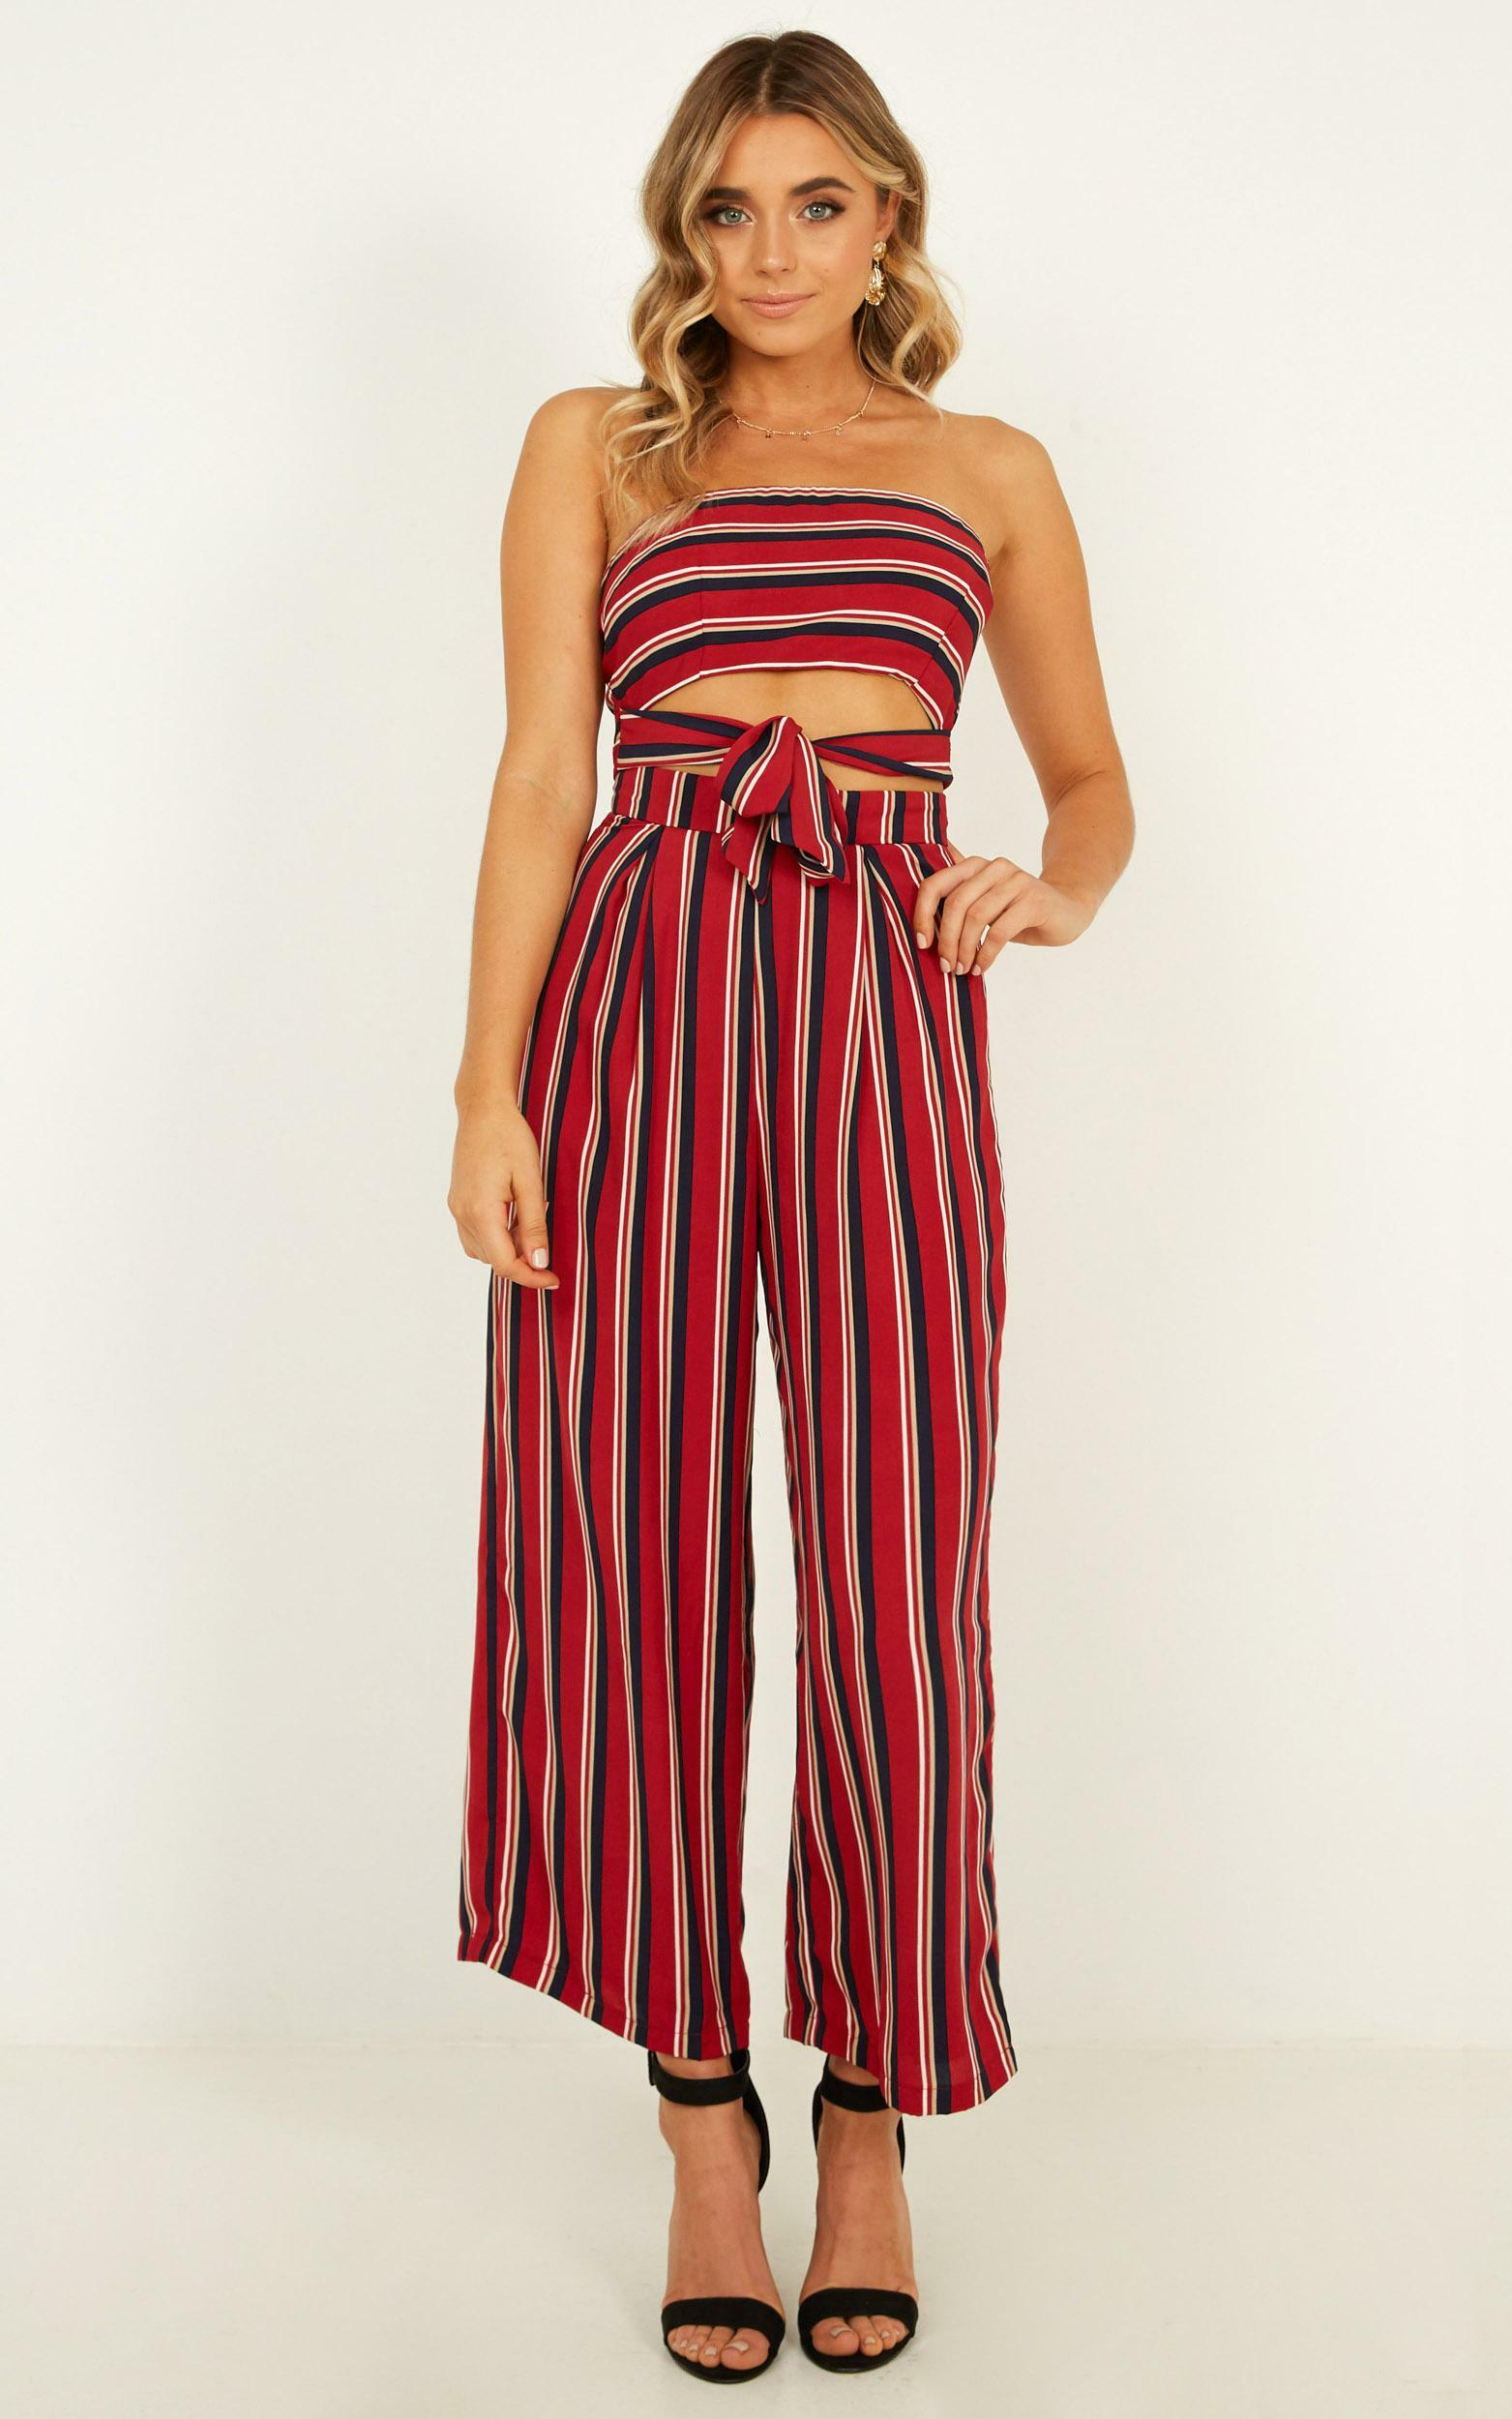 Keep On Flourishing Two Piece Set In wine stripe - 14 (XL), Wine, hi-res image number null